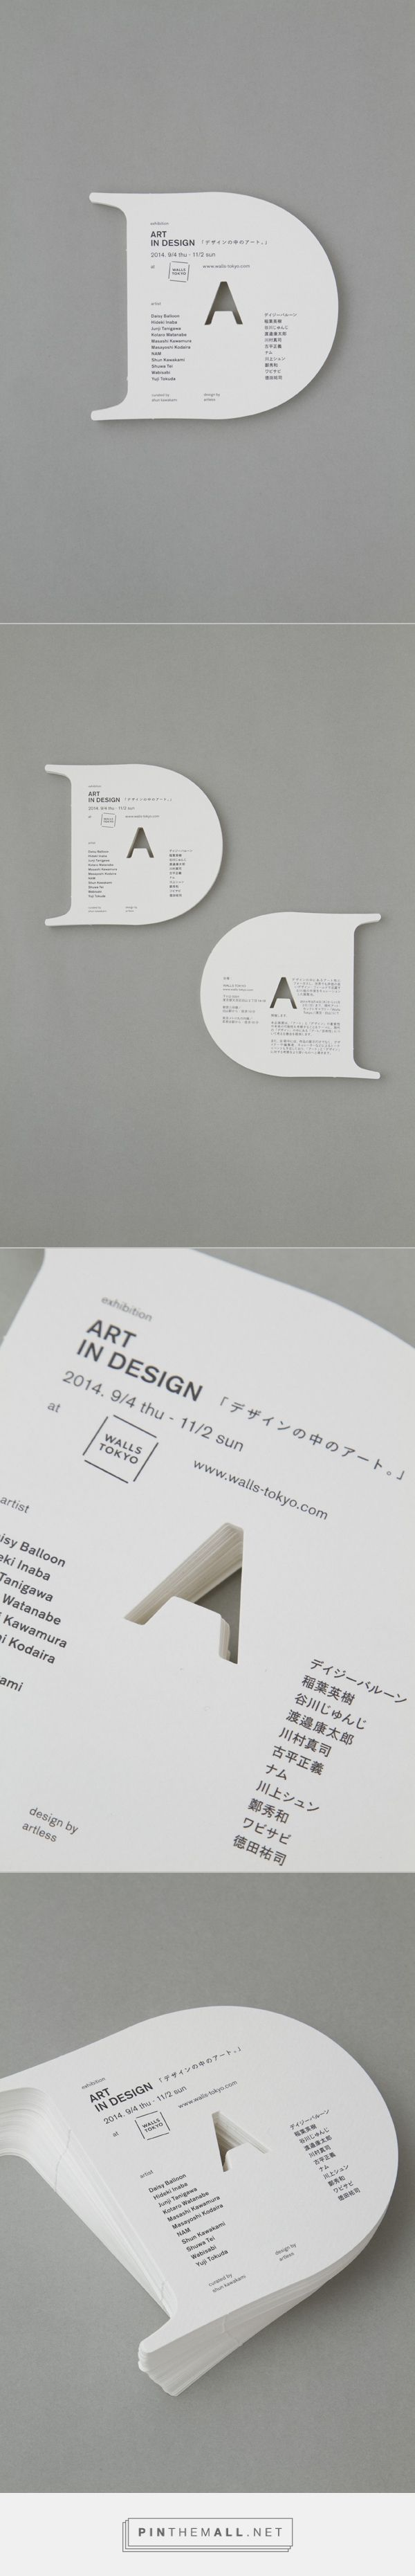 artless Inc. | news and portfolio : * print : ART IN DESIGN / exhibition at walls tokyo (invitation card).